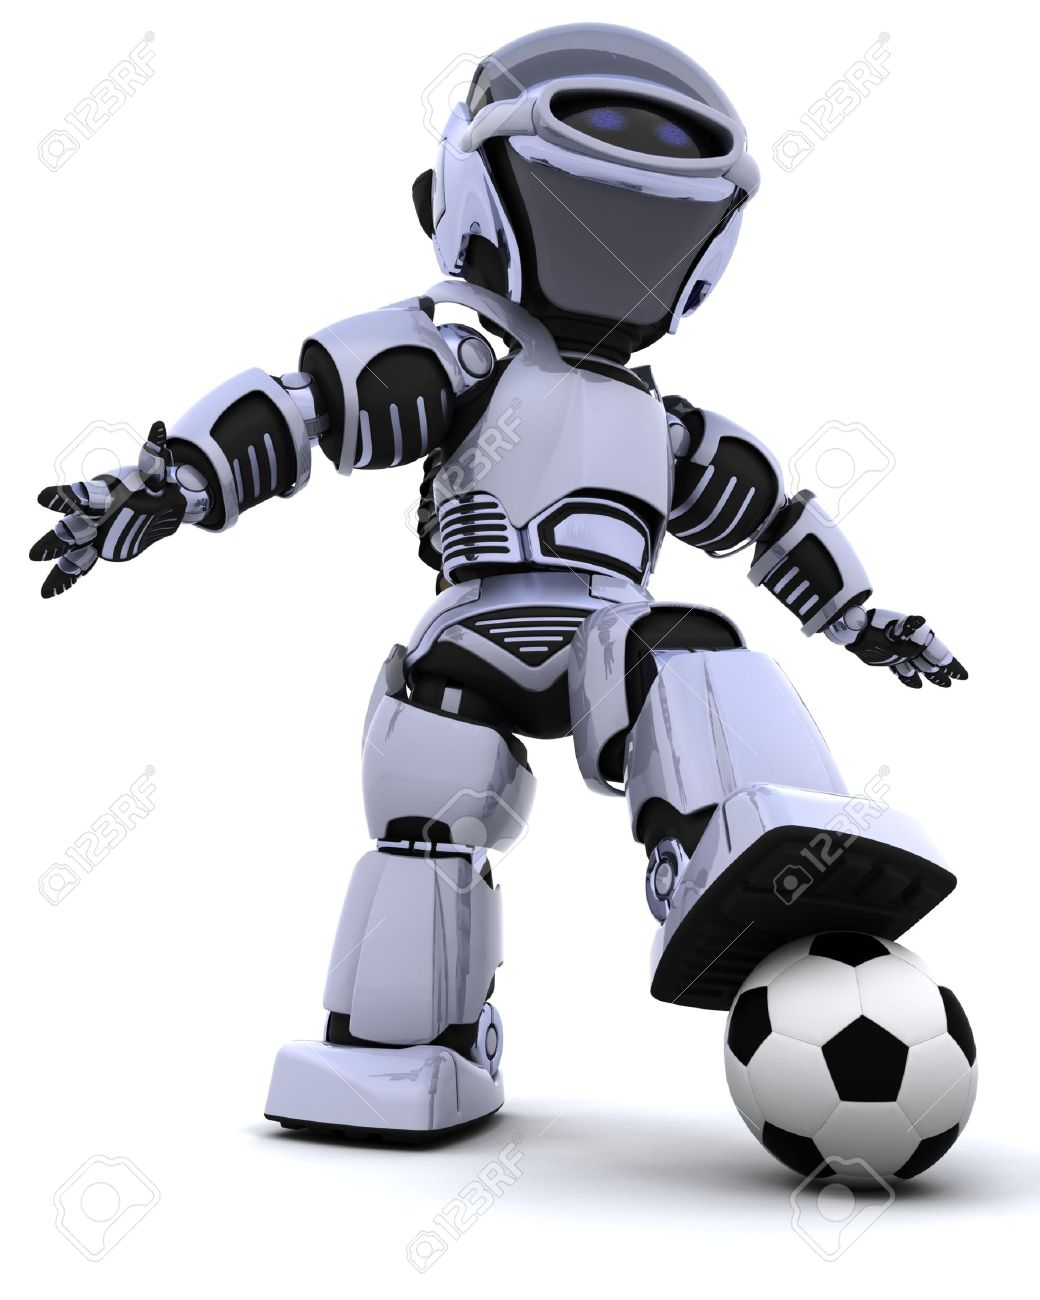 6958806 3d render of a robot playing soccer stock photo football